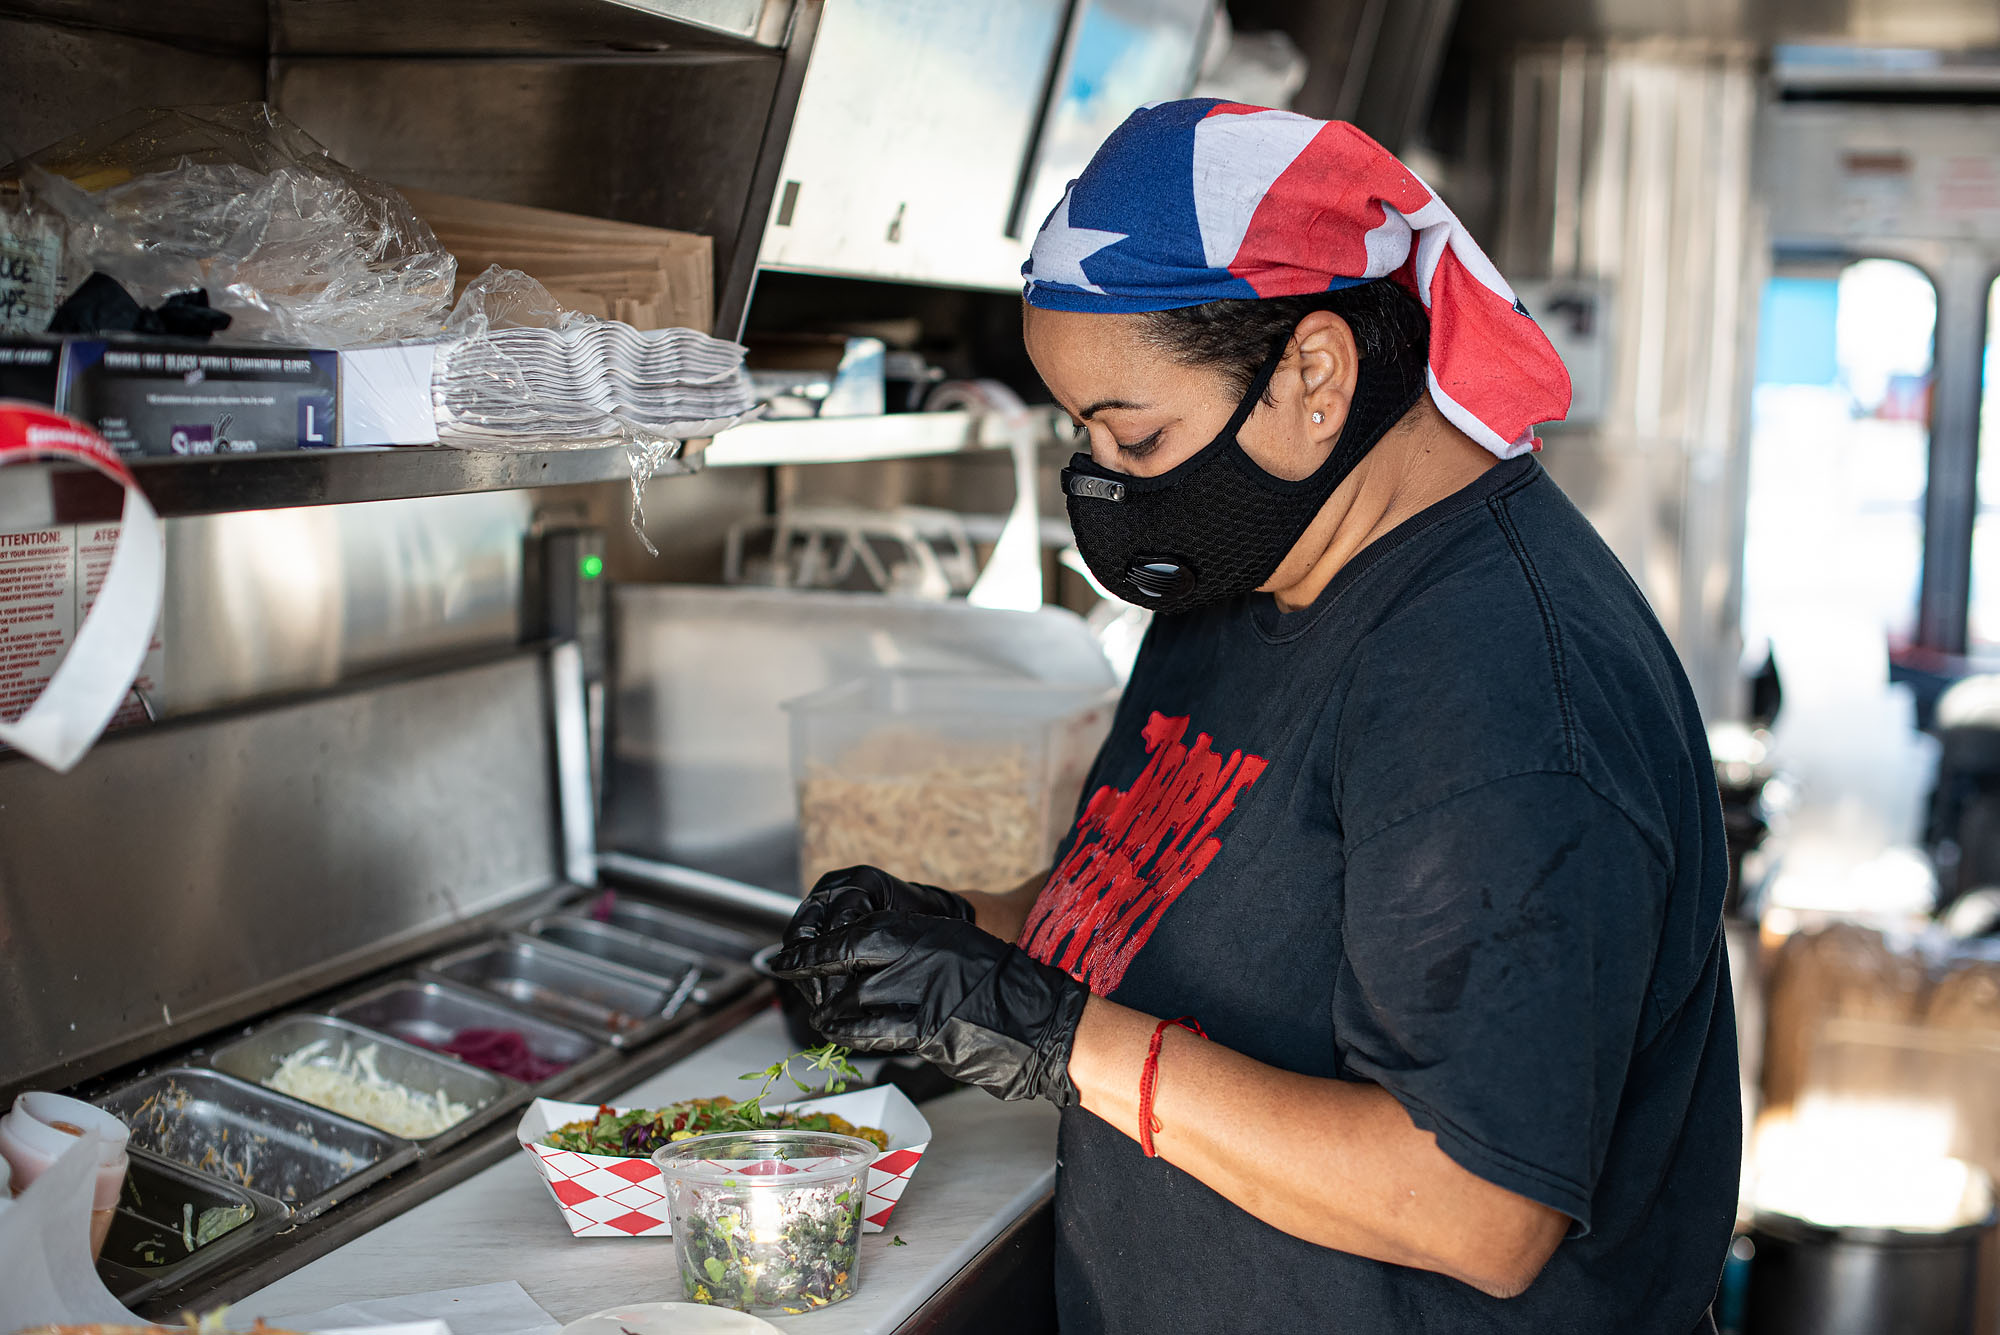 Omayra Dakis of Triple Threat Truck in a food truck kitchen wearing a Puerto Rican flag and mask.